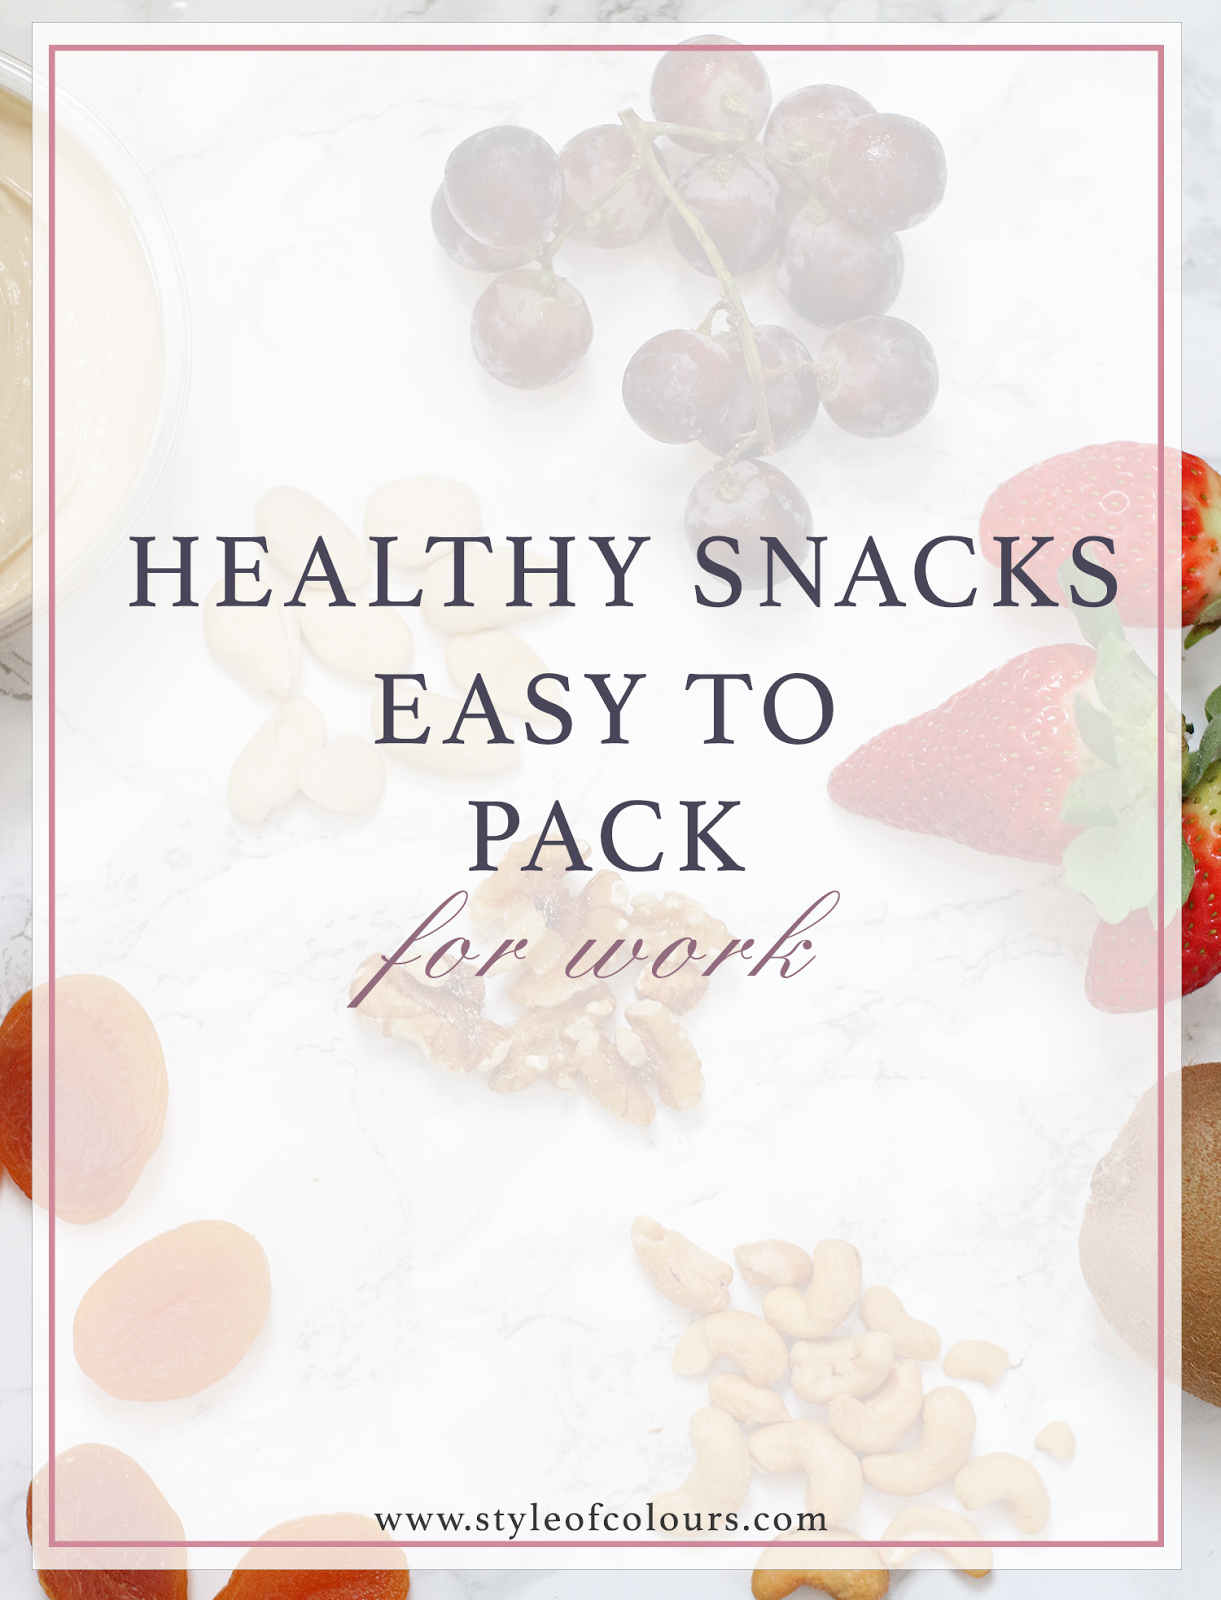 Healthy snacks which are easy to pack and eat at work